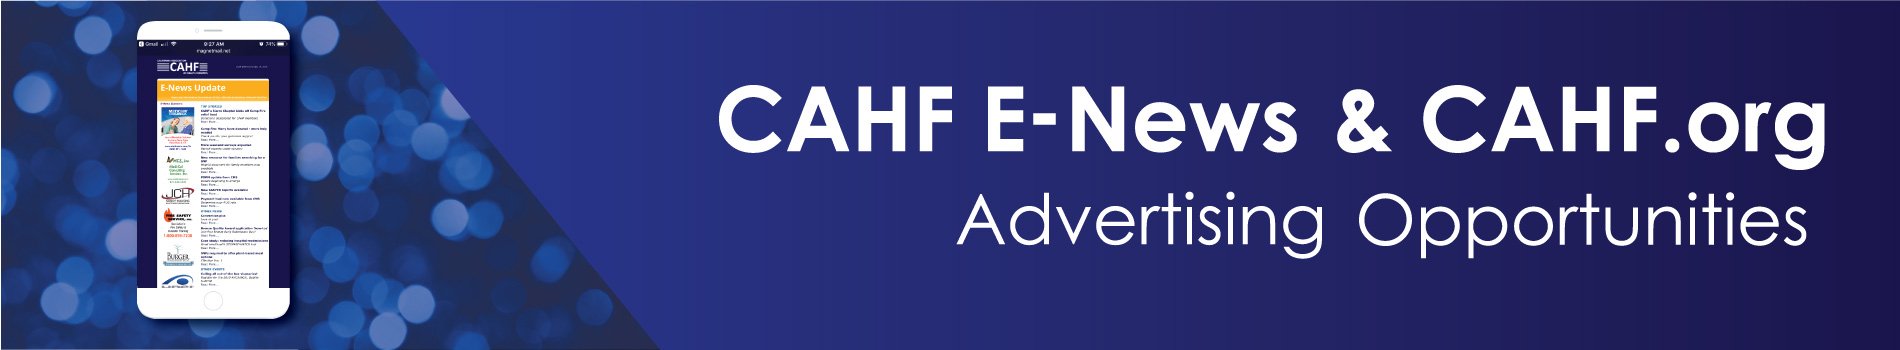 imgCAHF E-News & CAHF.org Advertising Opportunities